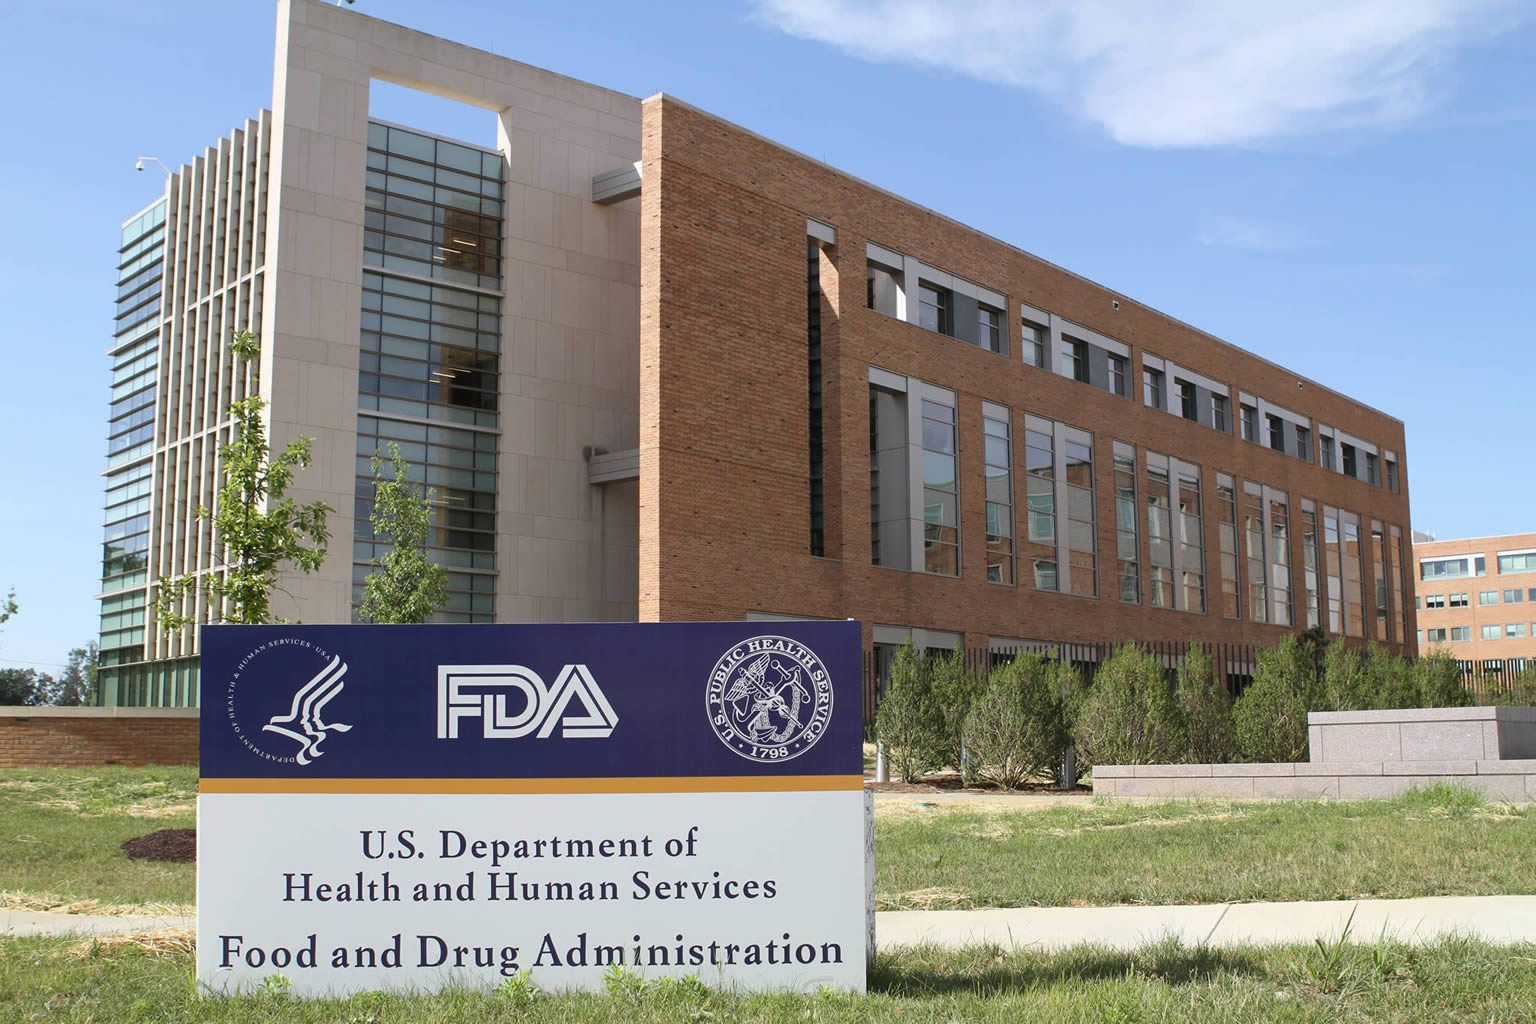 Food and Drug Administration building.